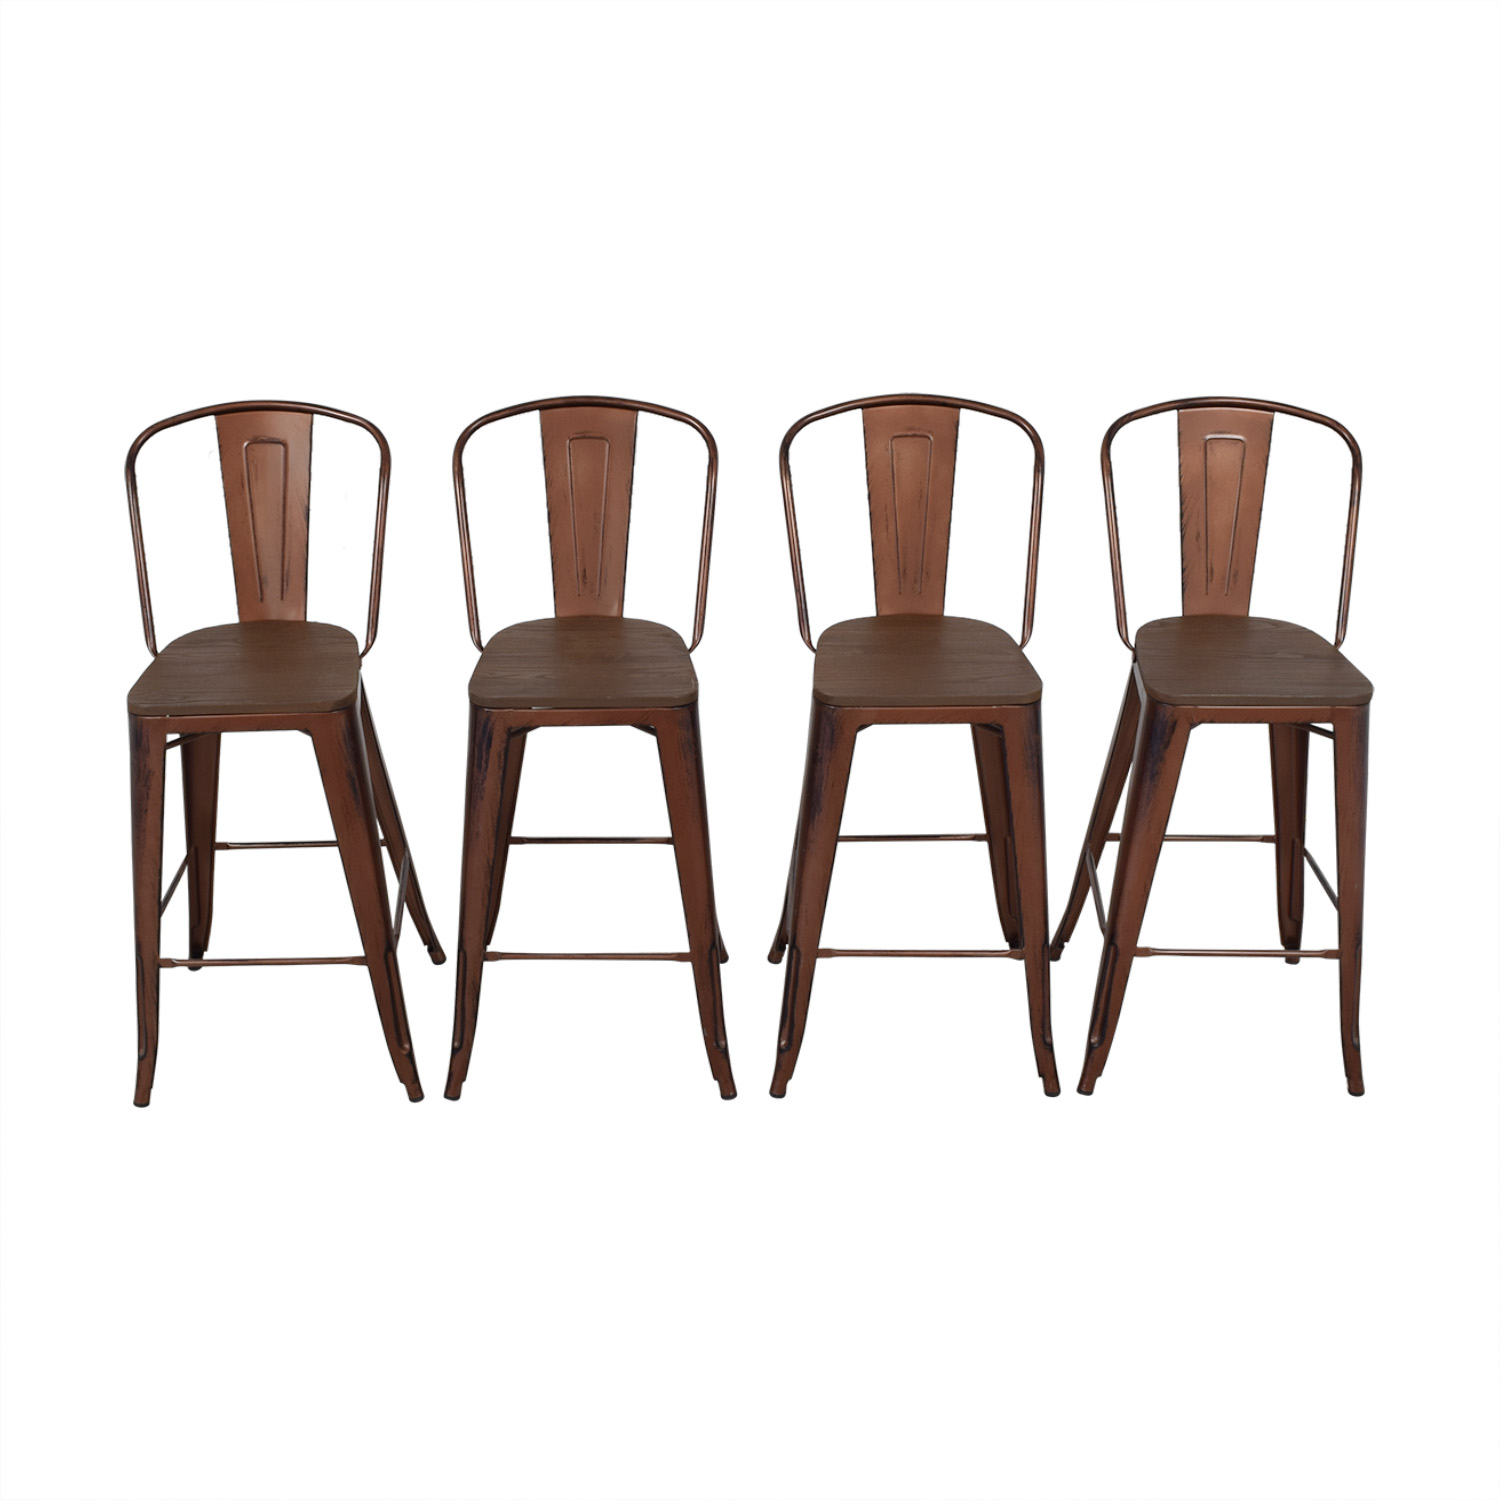 Overstock Overstock Tabouret Wood Seat Brushed Copper Bistro Bar Stools coupon